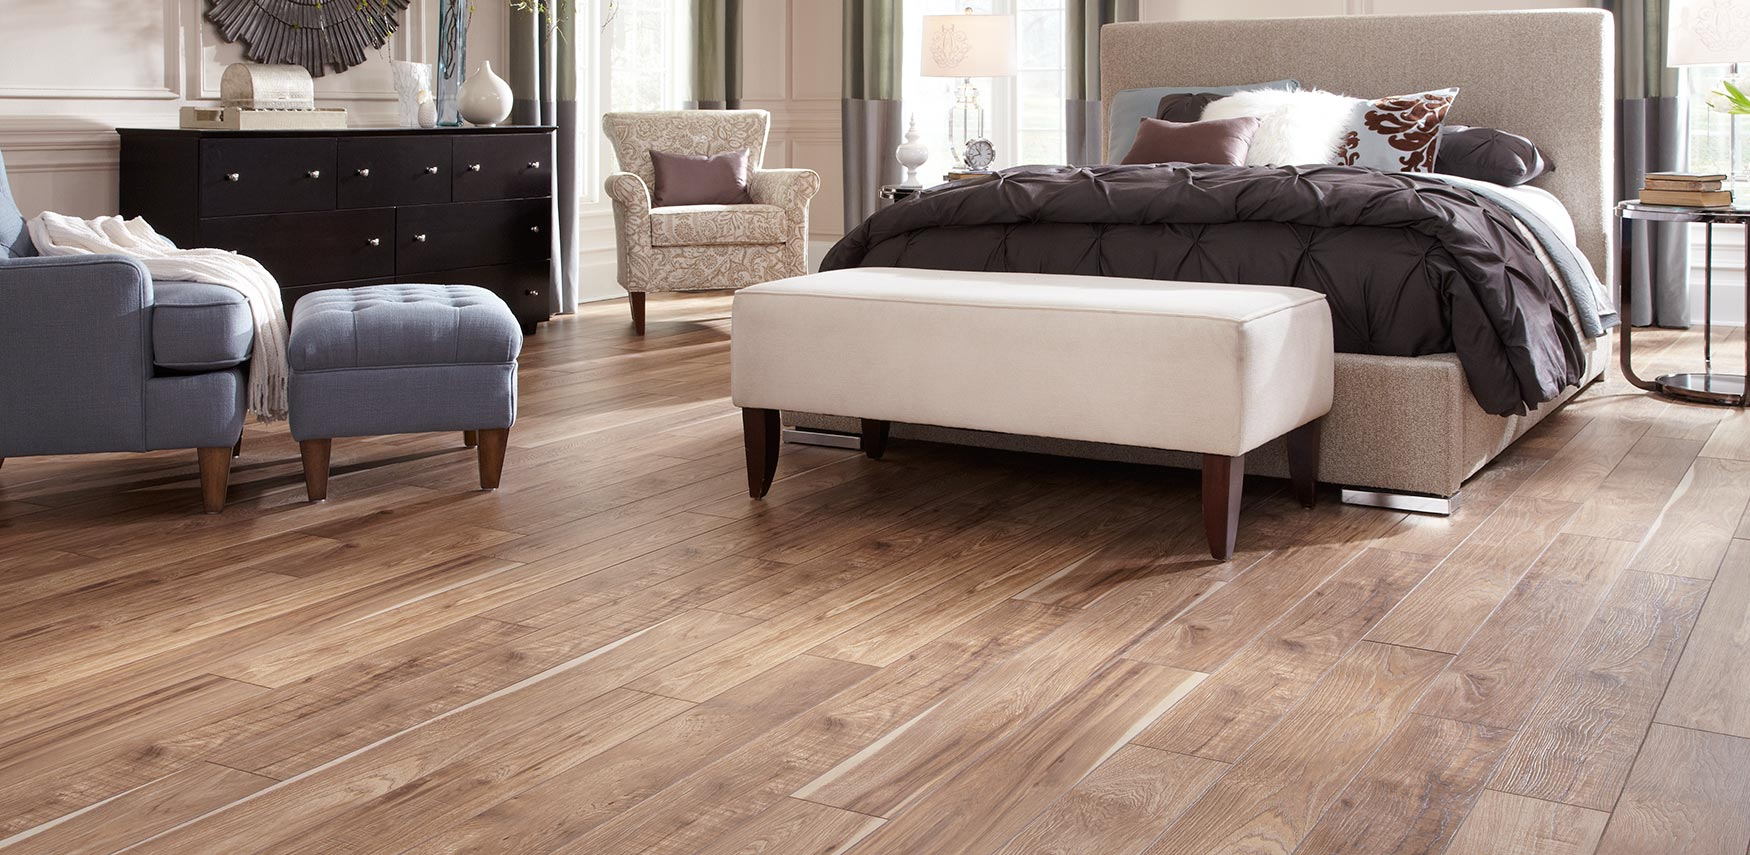 Reminiscent of old county fresh sawn lumber for added character in warmth from this Mannington Laminate.